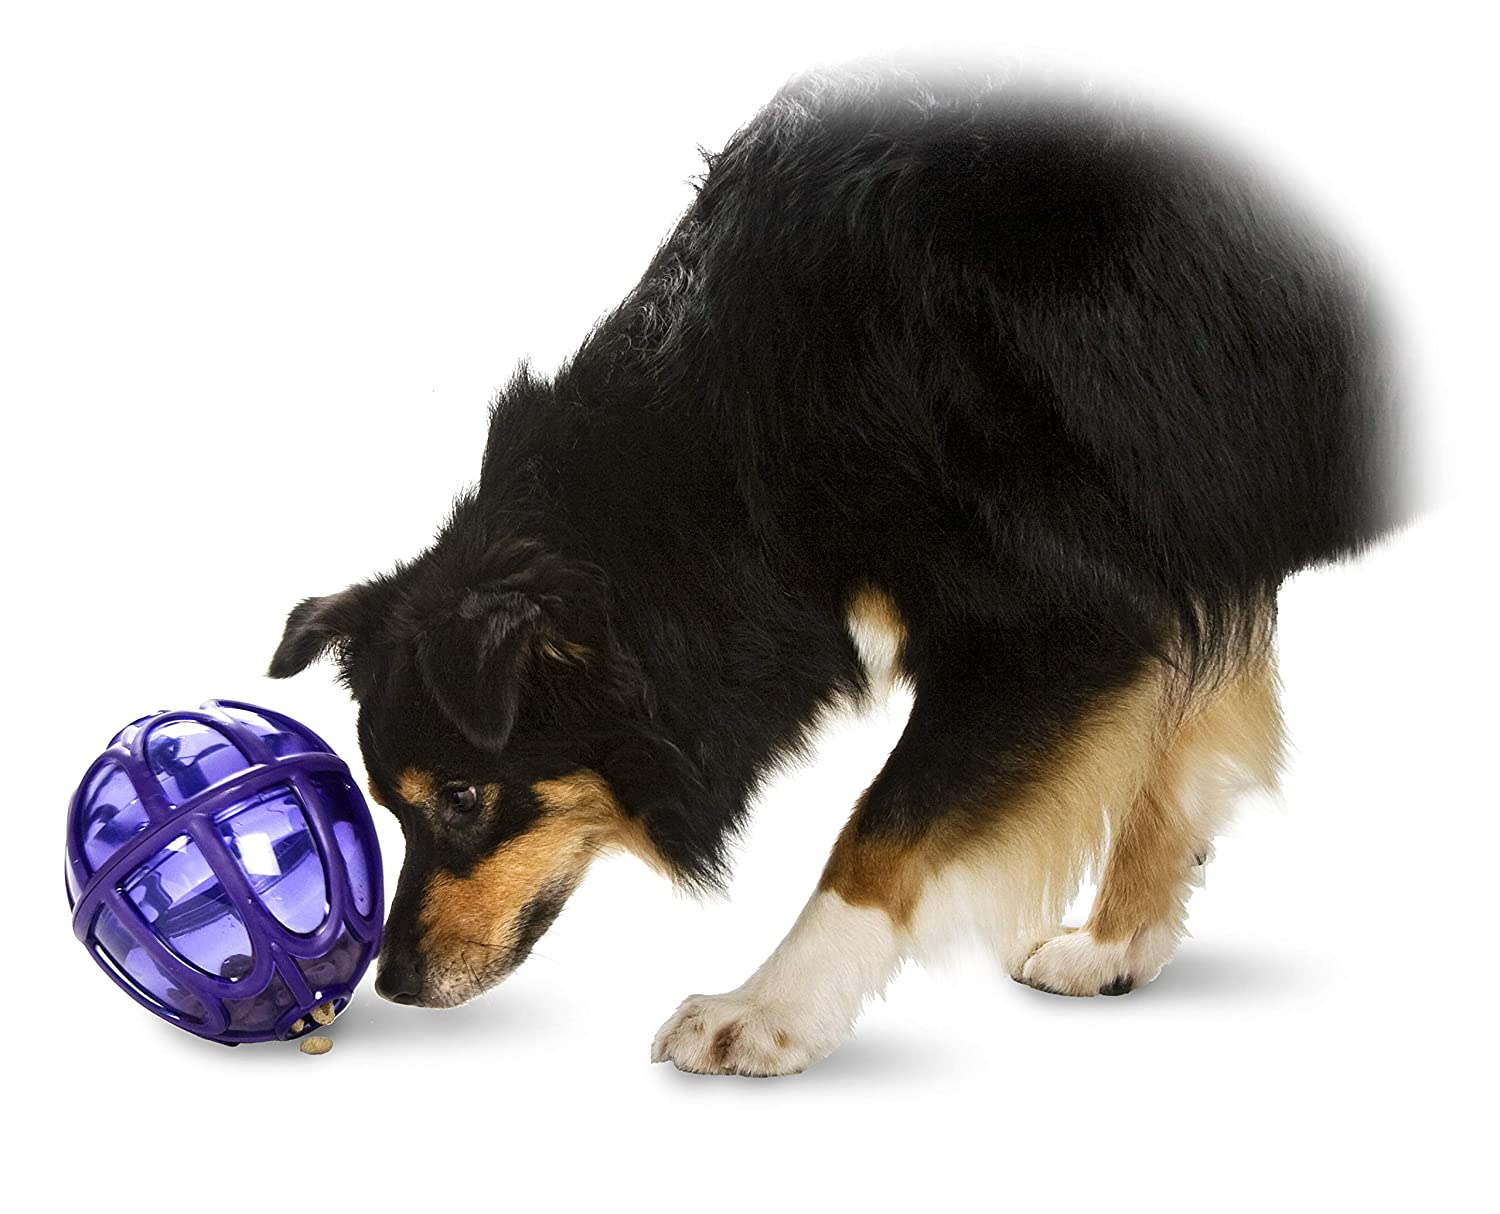 Sports with a dog - choosing the right toy